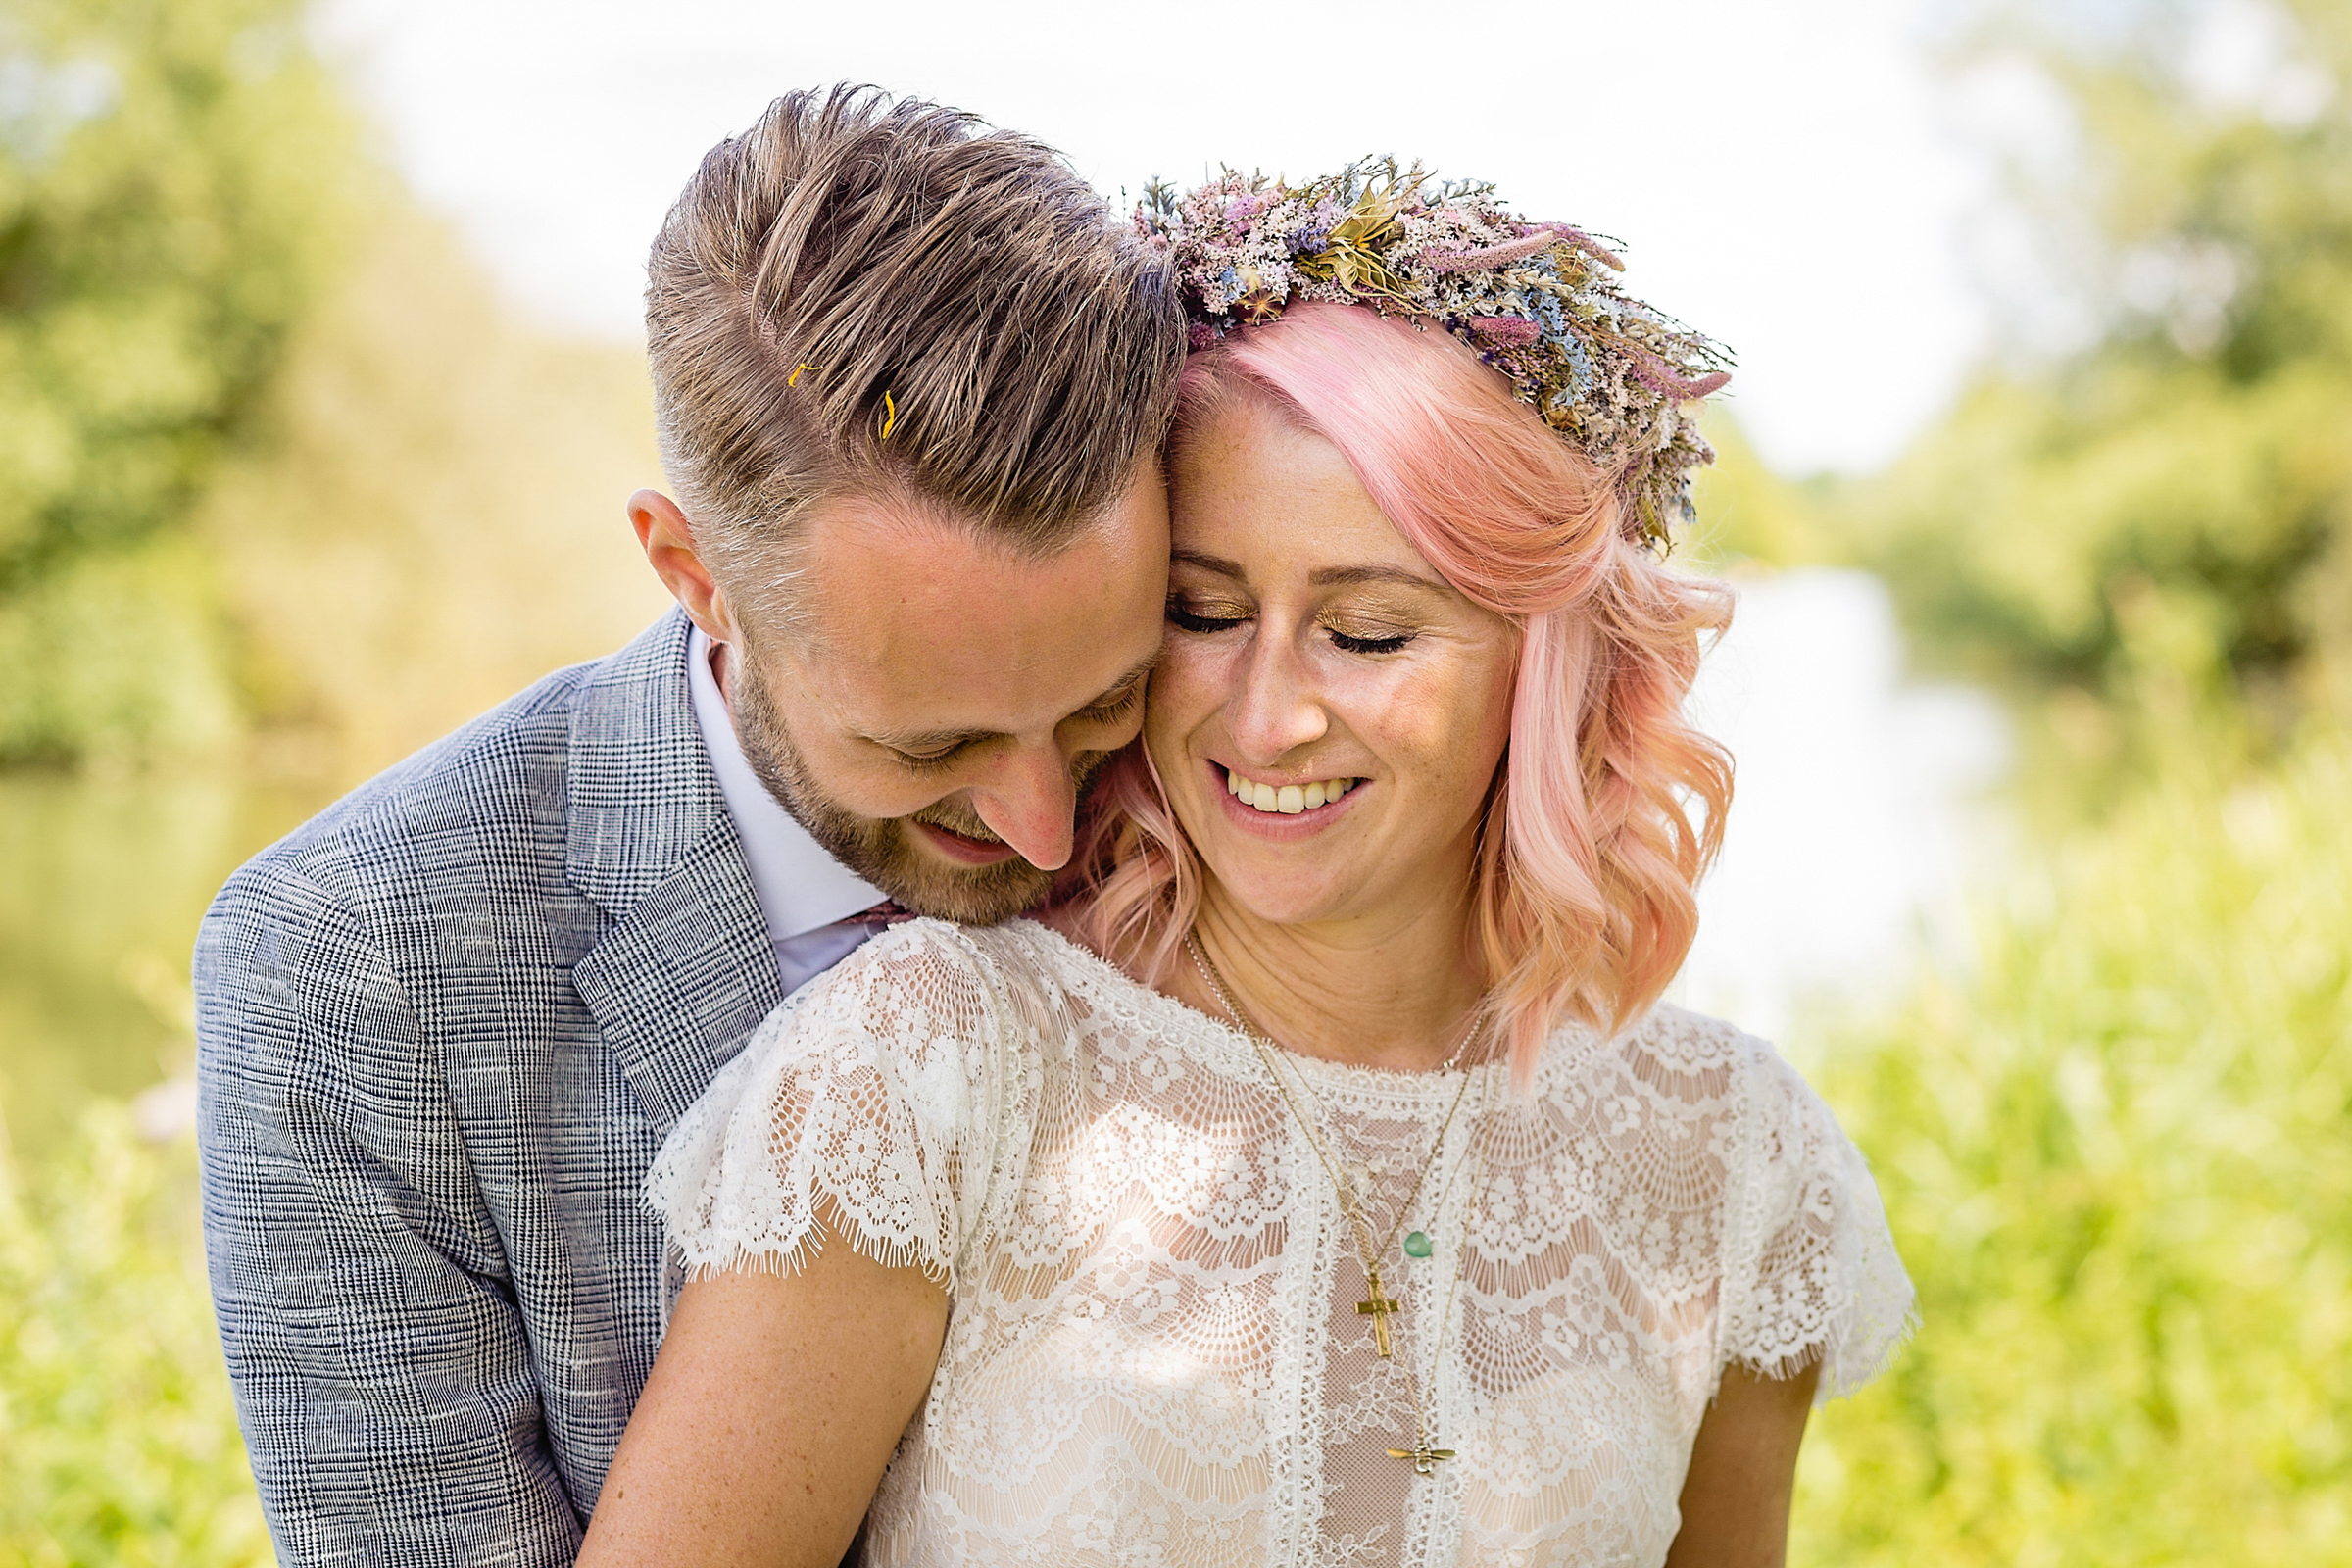 Bride in lace dress with pink hair and floral wreath - photo by Emma plus Rich - UK